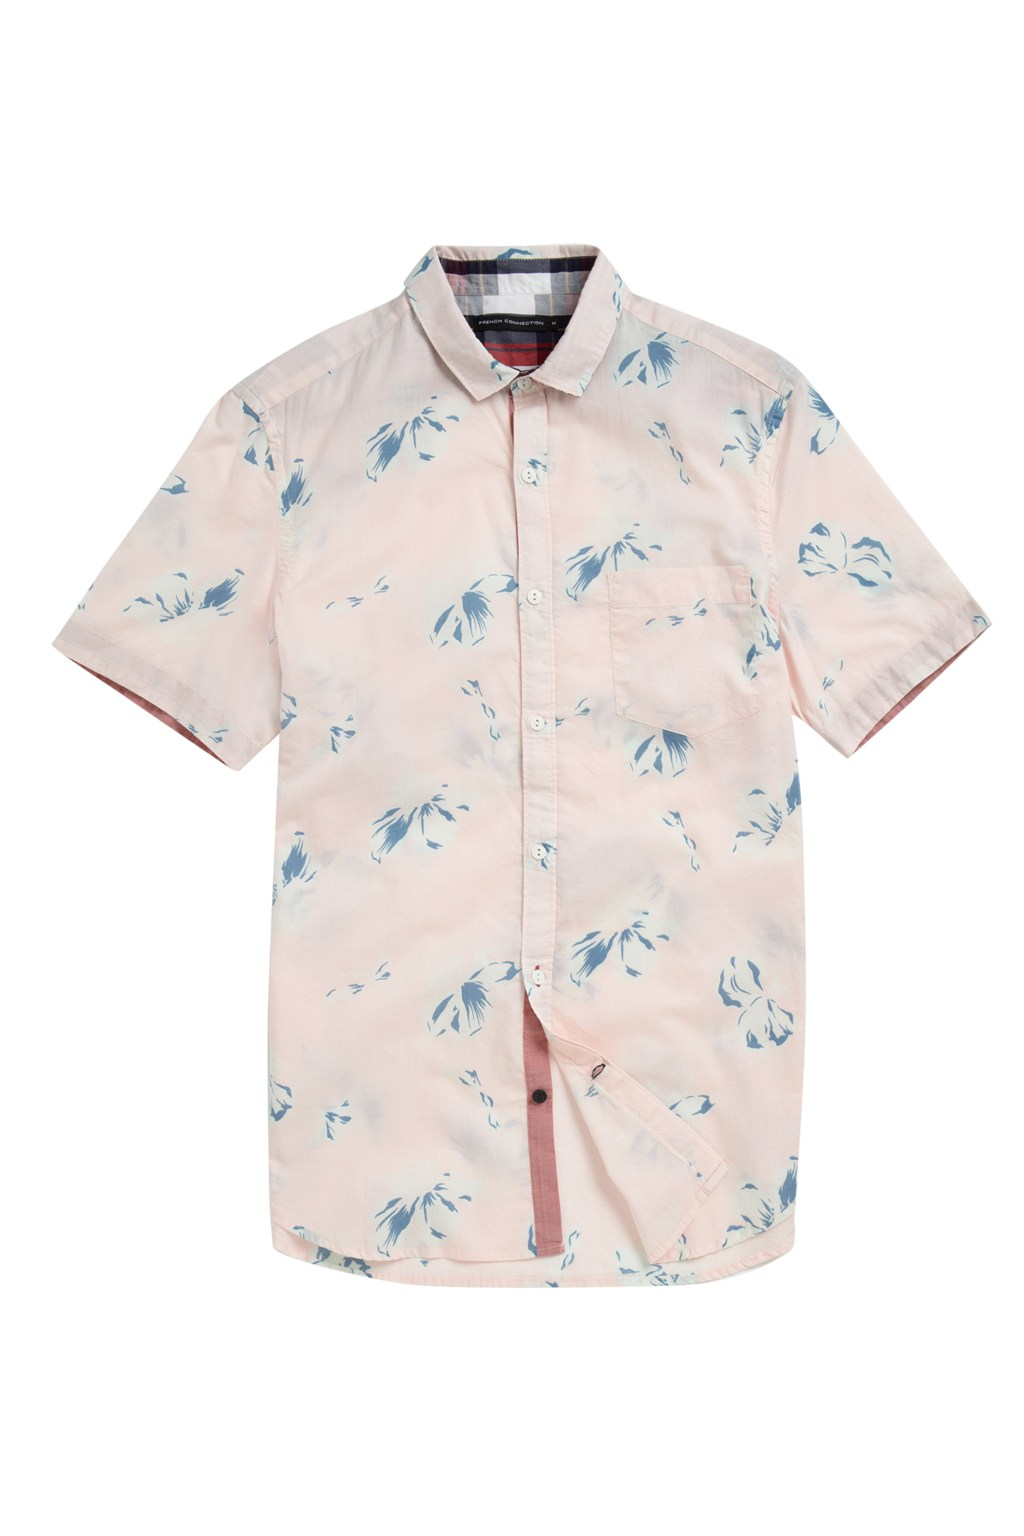 French Connection Surfers Knot Shirt product image